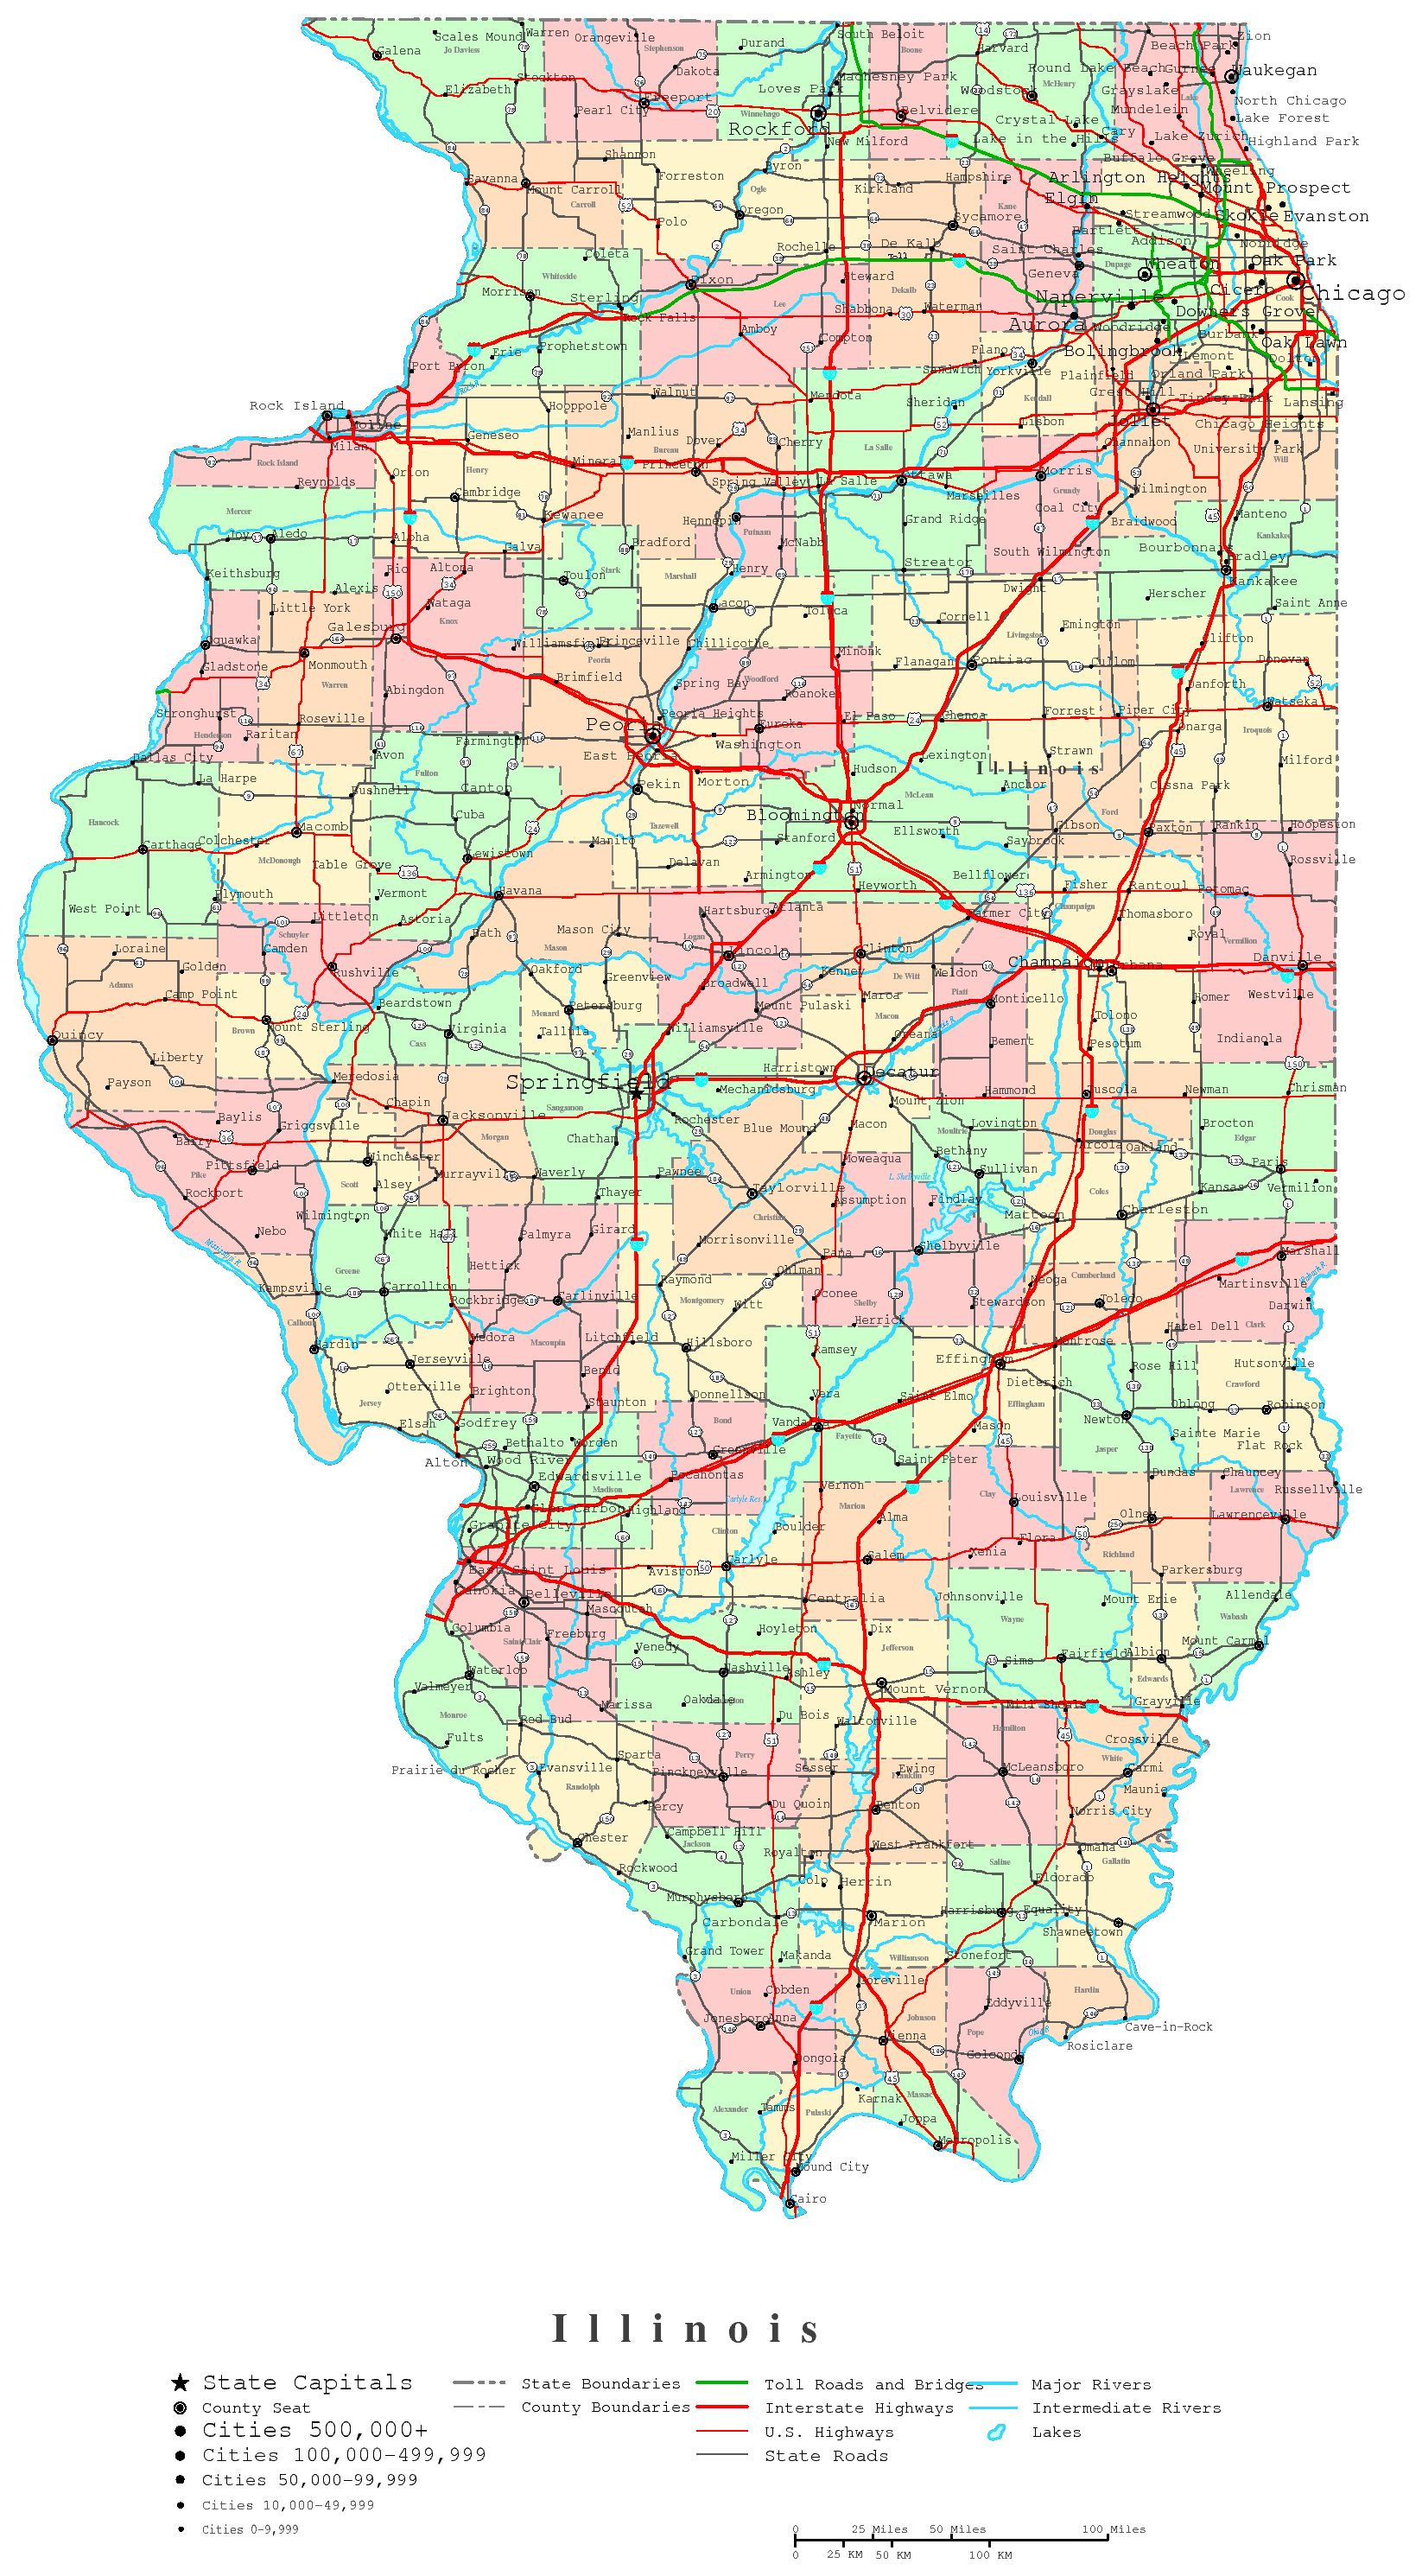 Illinois Printable Map - Illinois on the us map